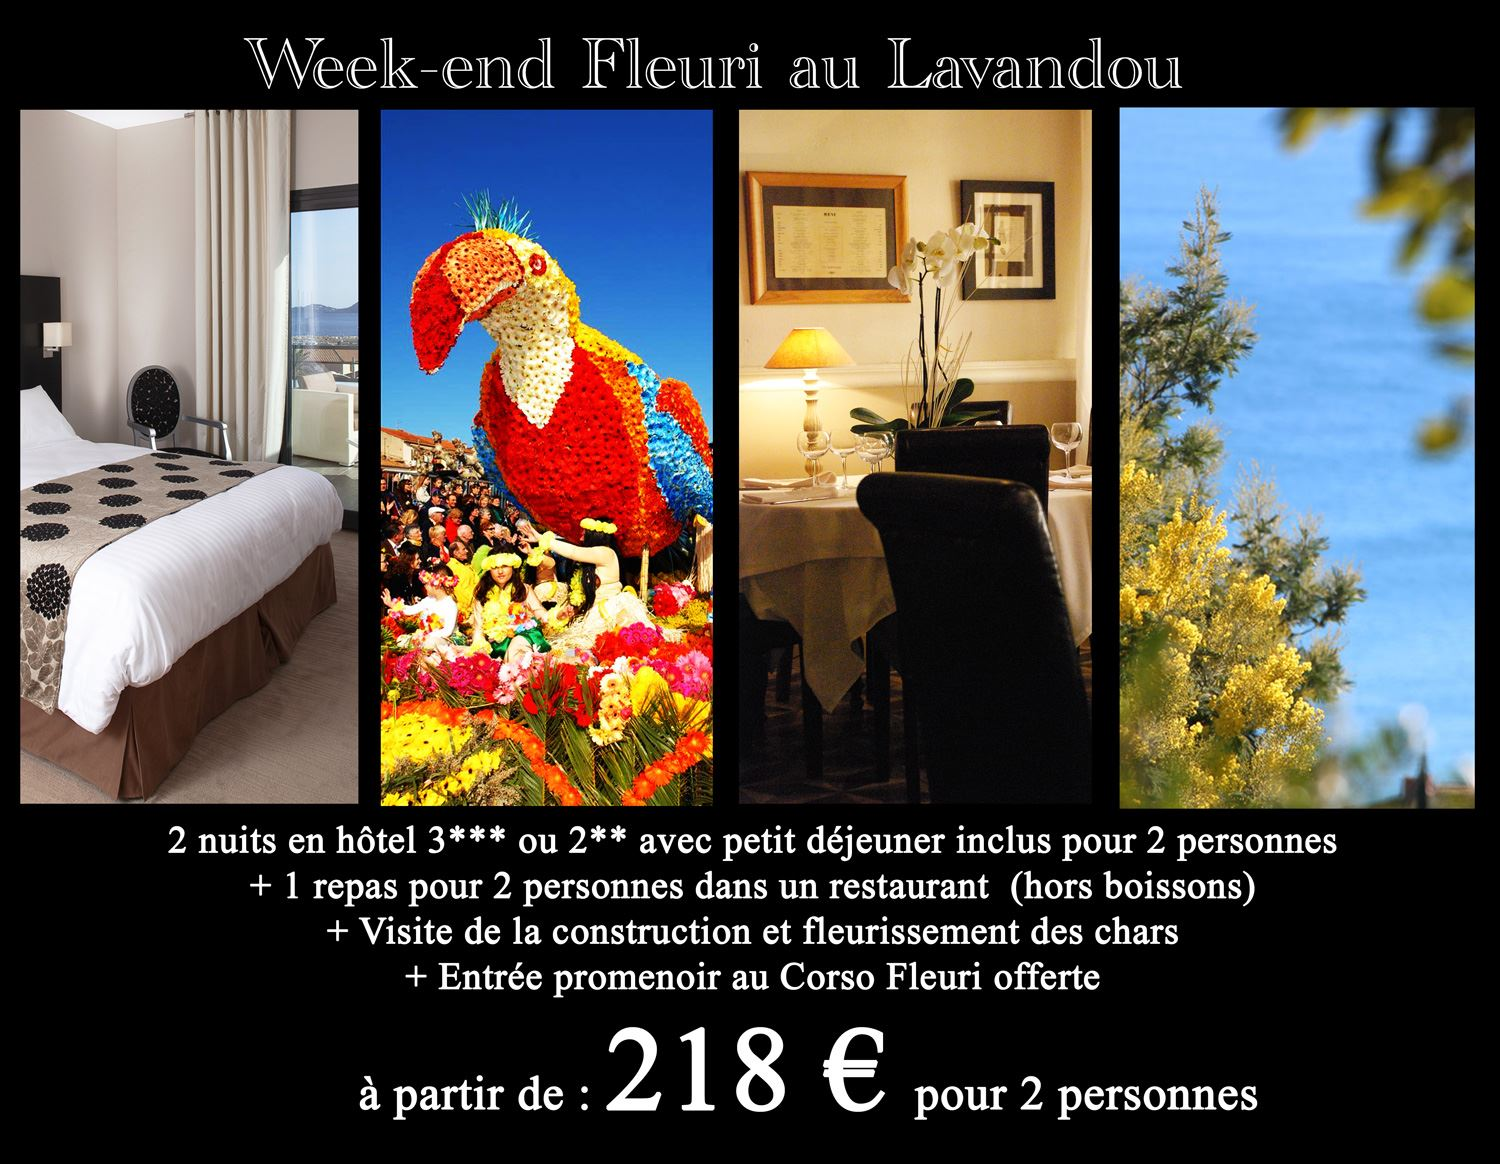 Week-end Fleuri au Lavandou !